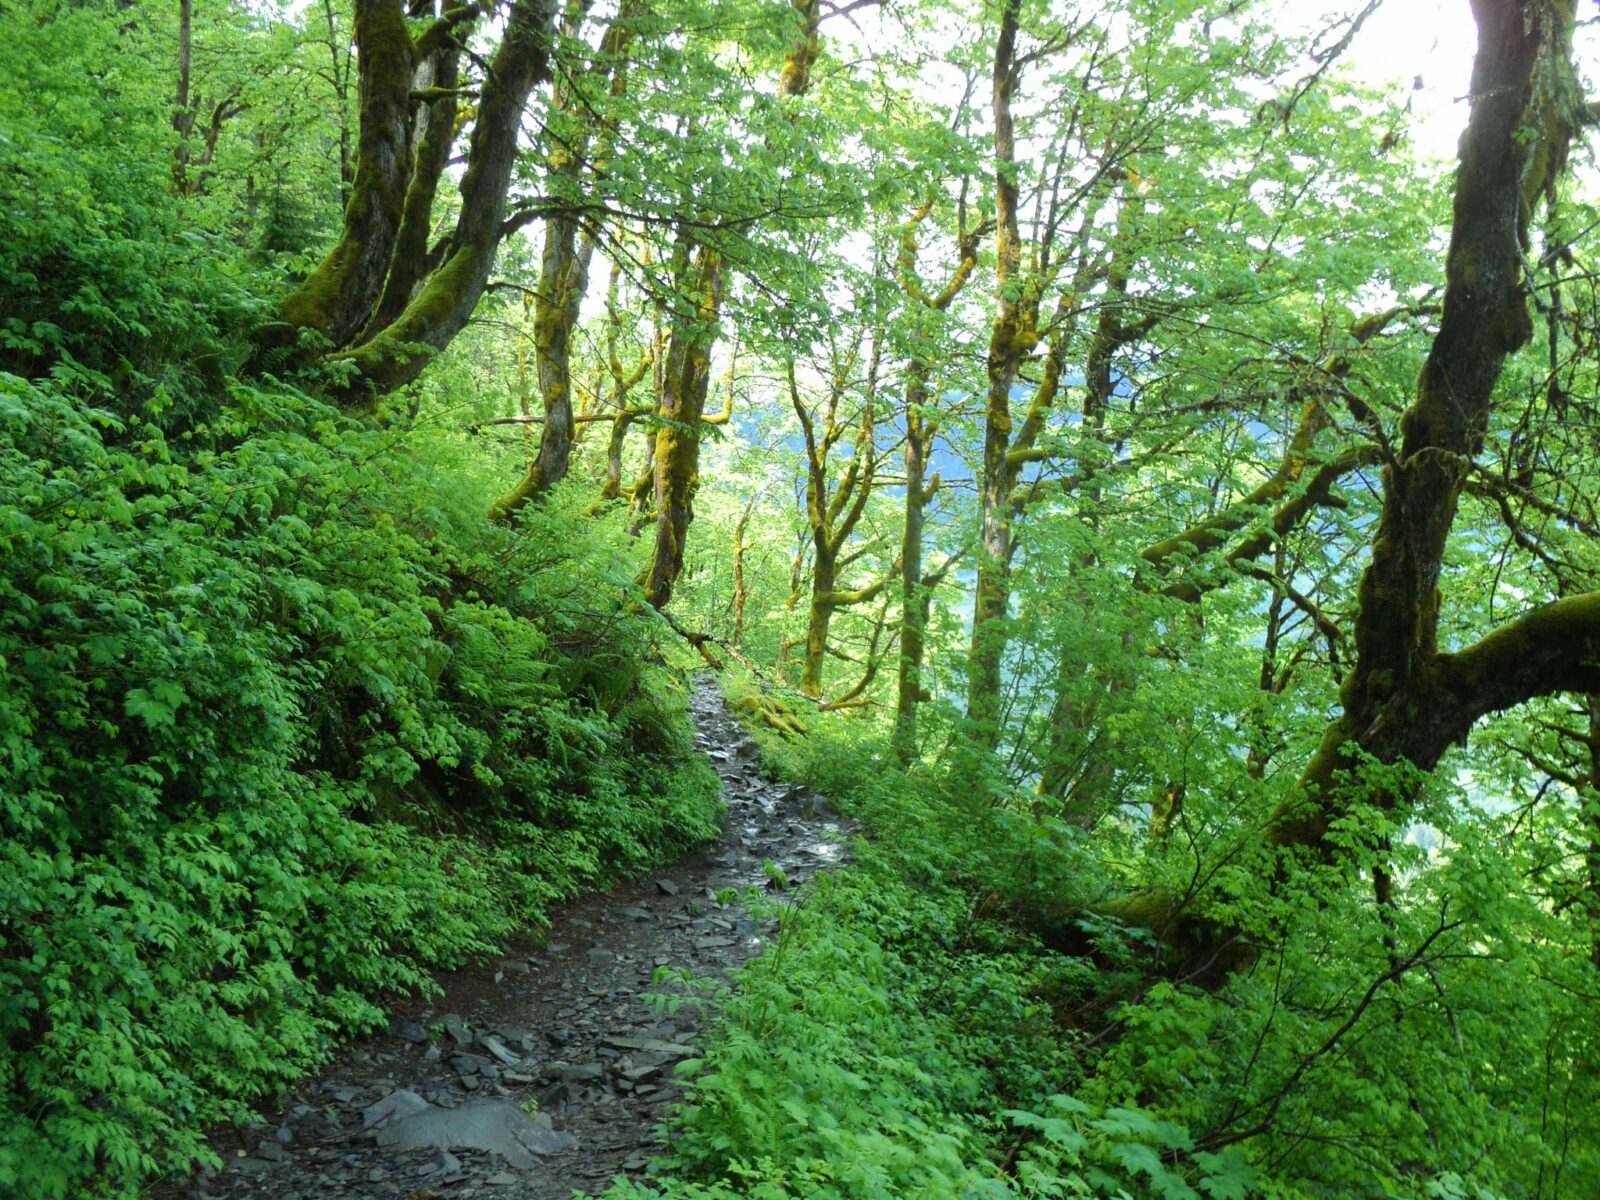 A rocky trail through bright green shrubs and green maple trees covered in moss